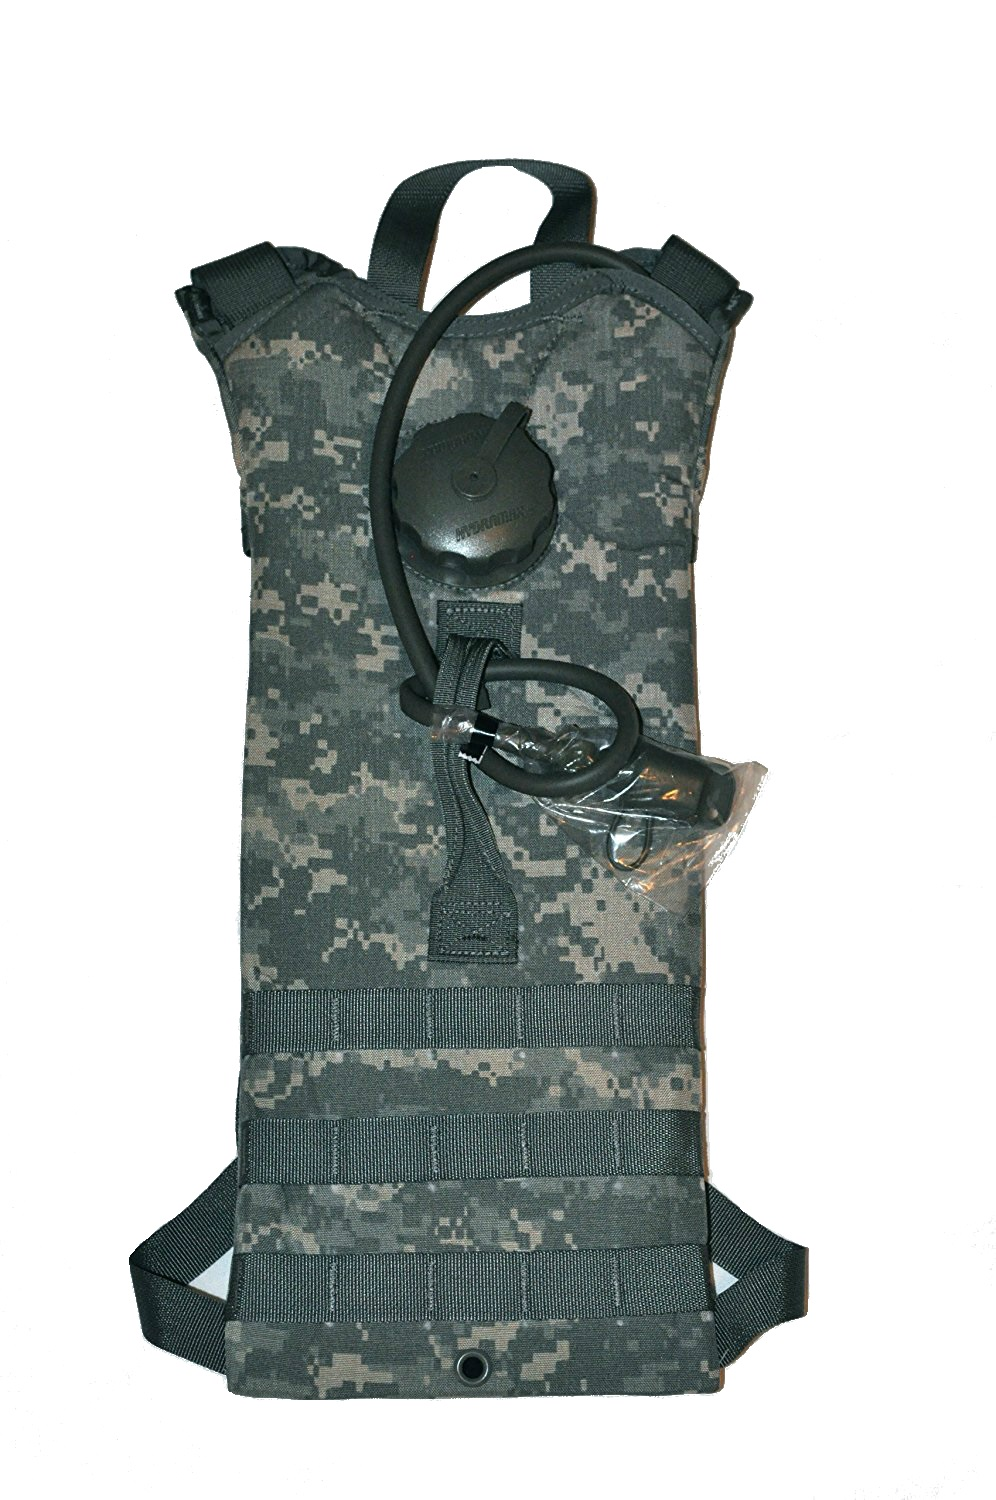 GI Molle II ACU Hydration Pack, 3 Liter by unknown